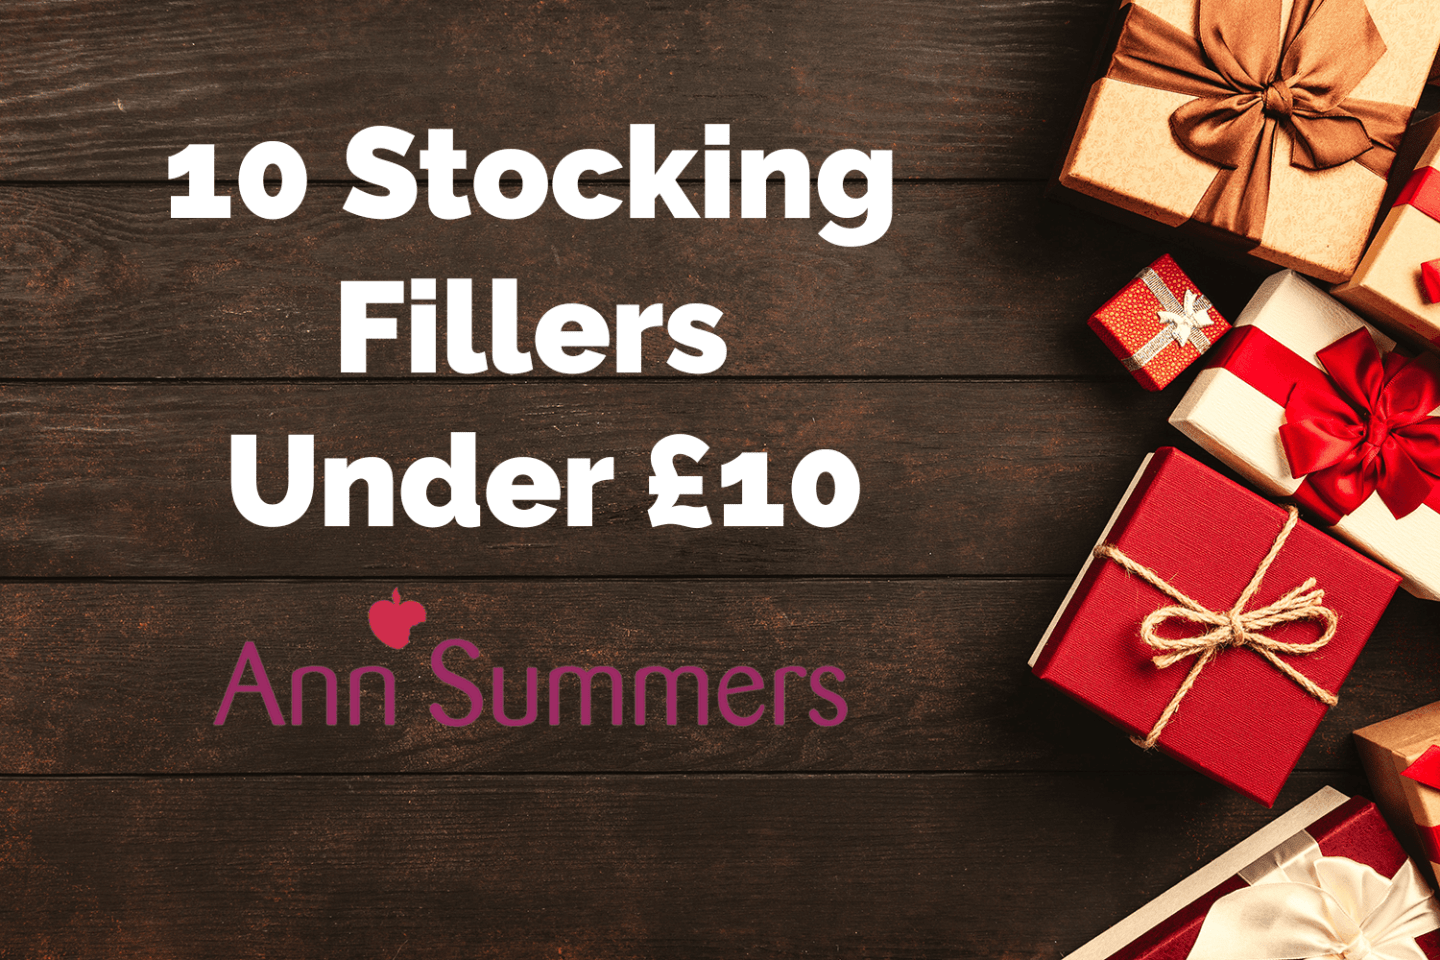 Ann Summers: 10 Stocking Fillers Under £10